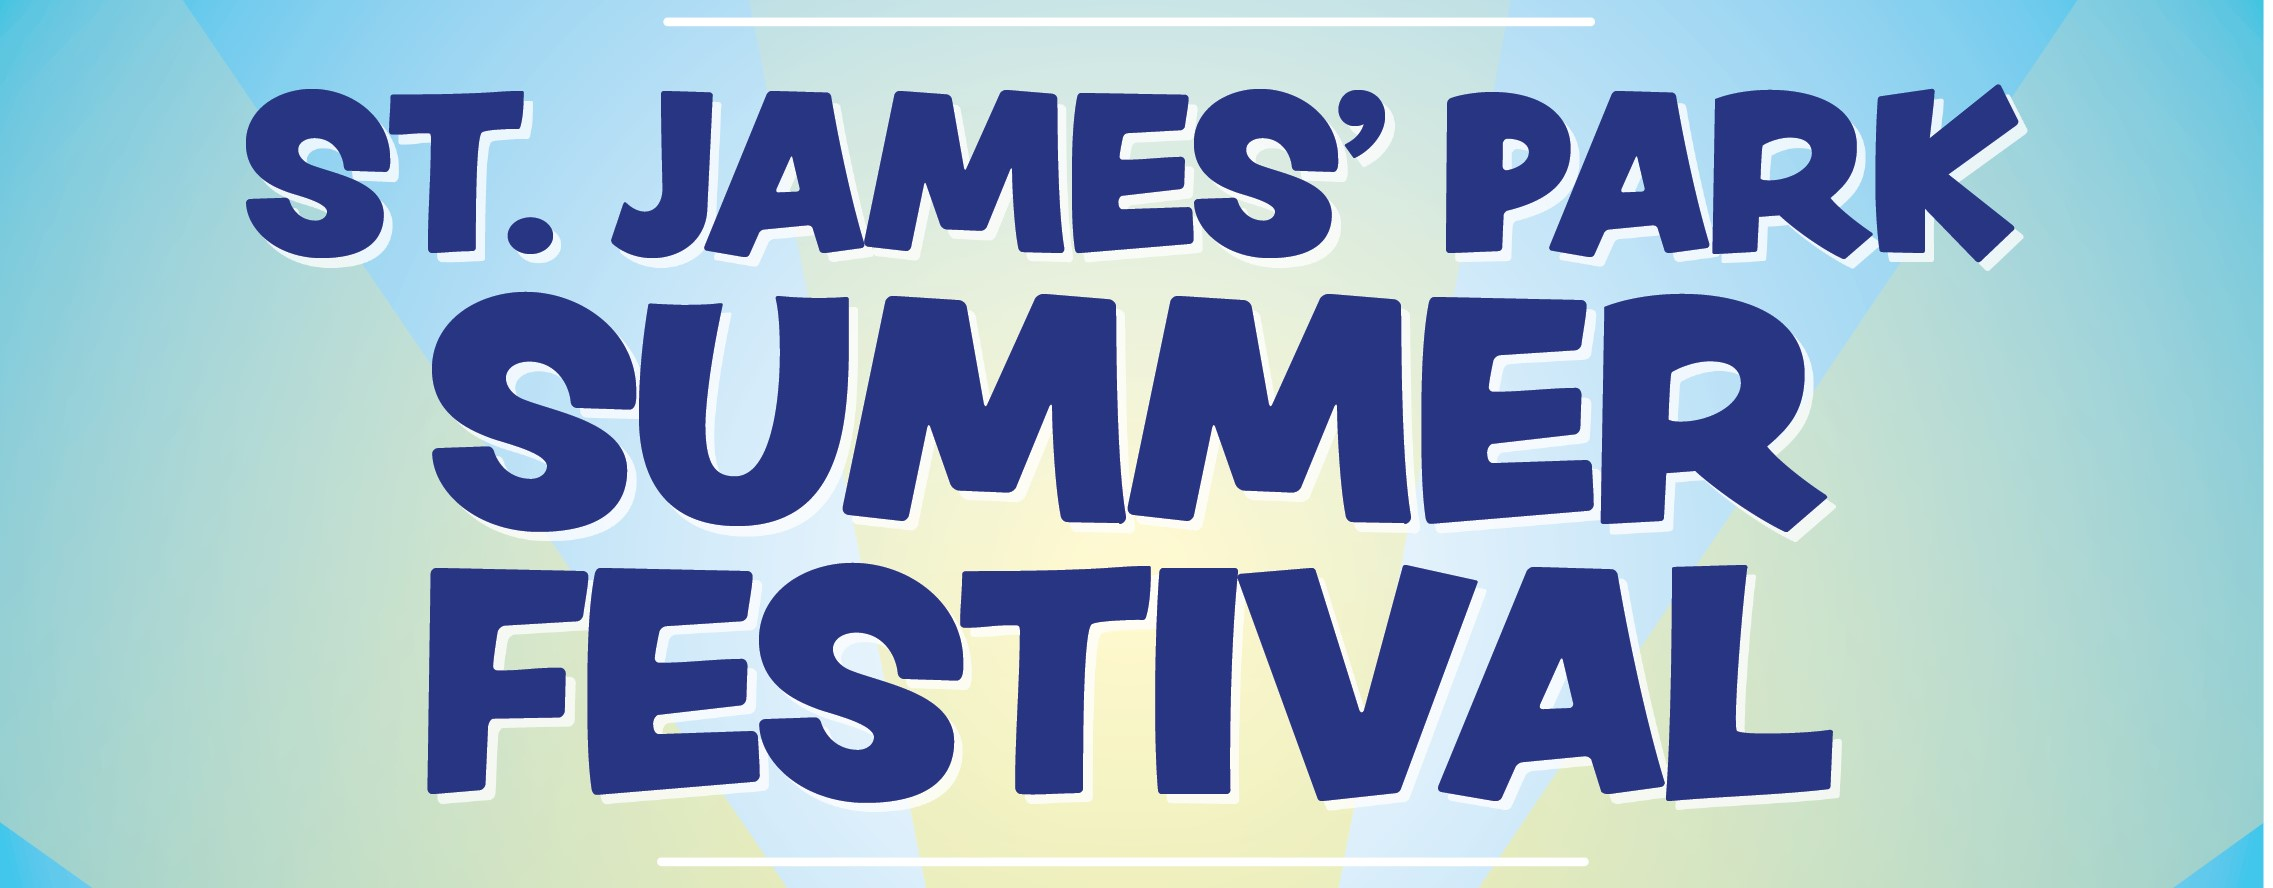 St. James' Park Summer Festival 2019!